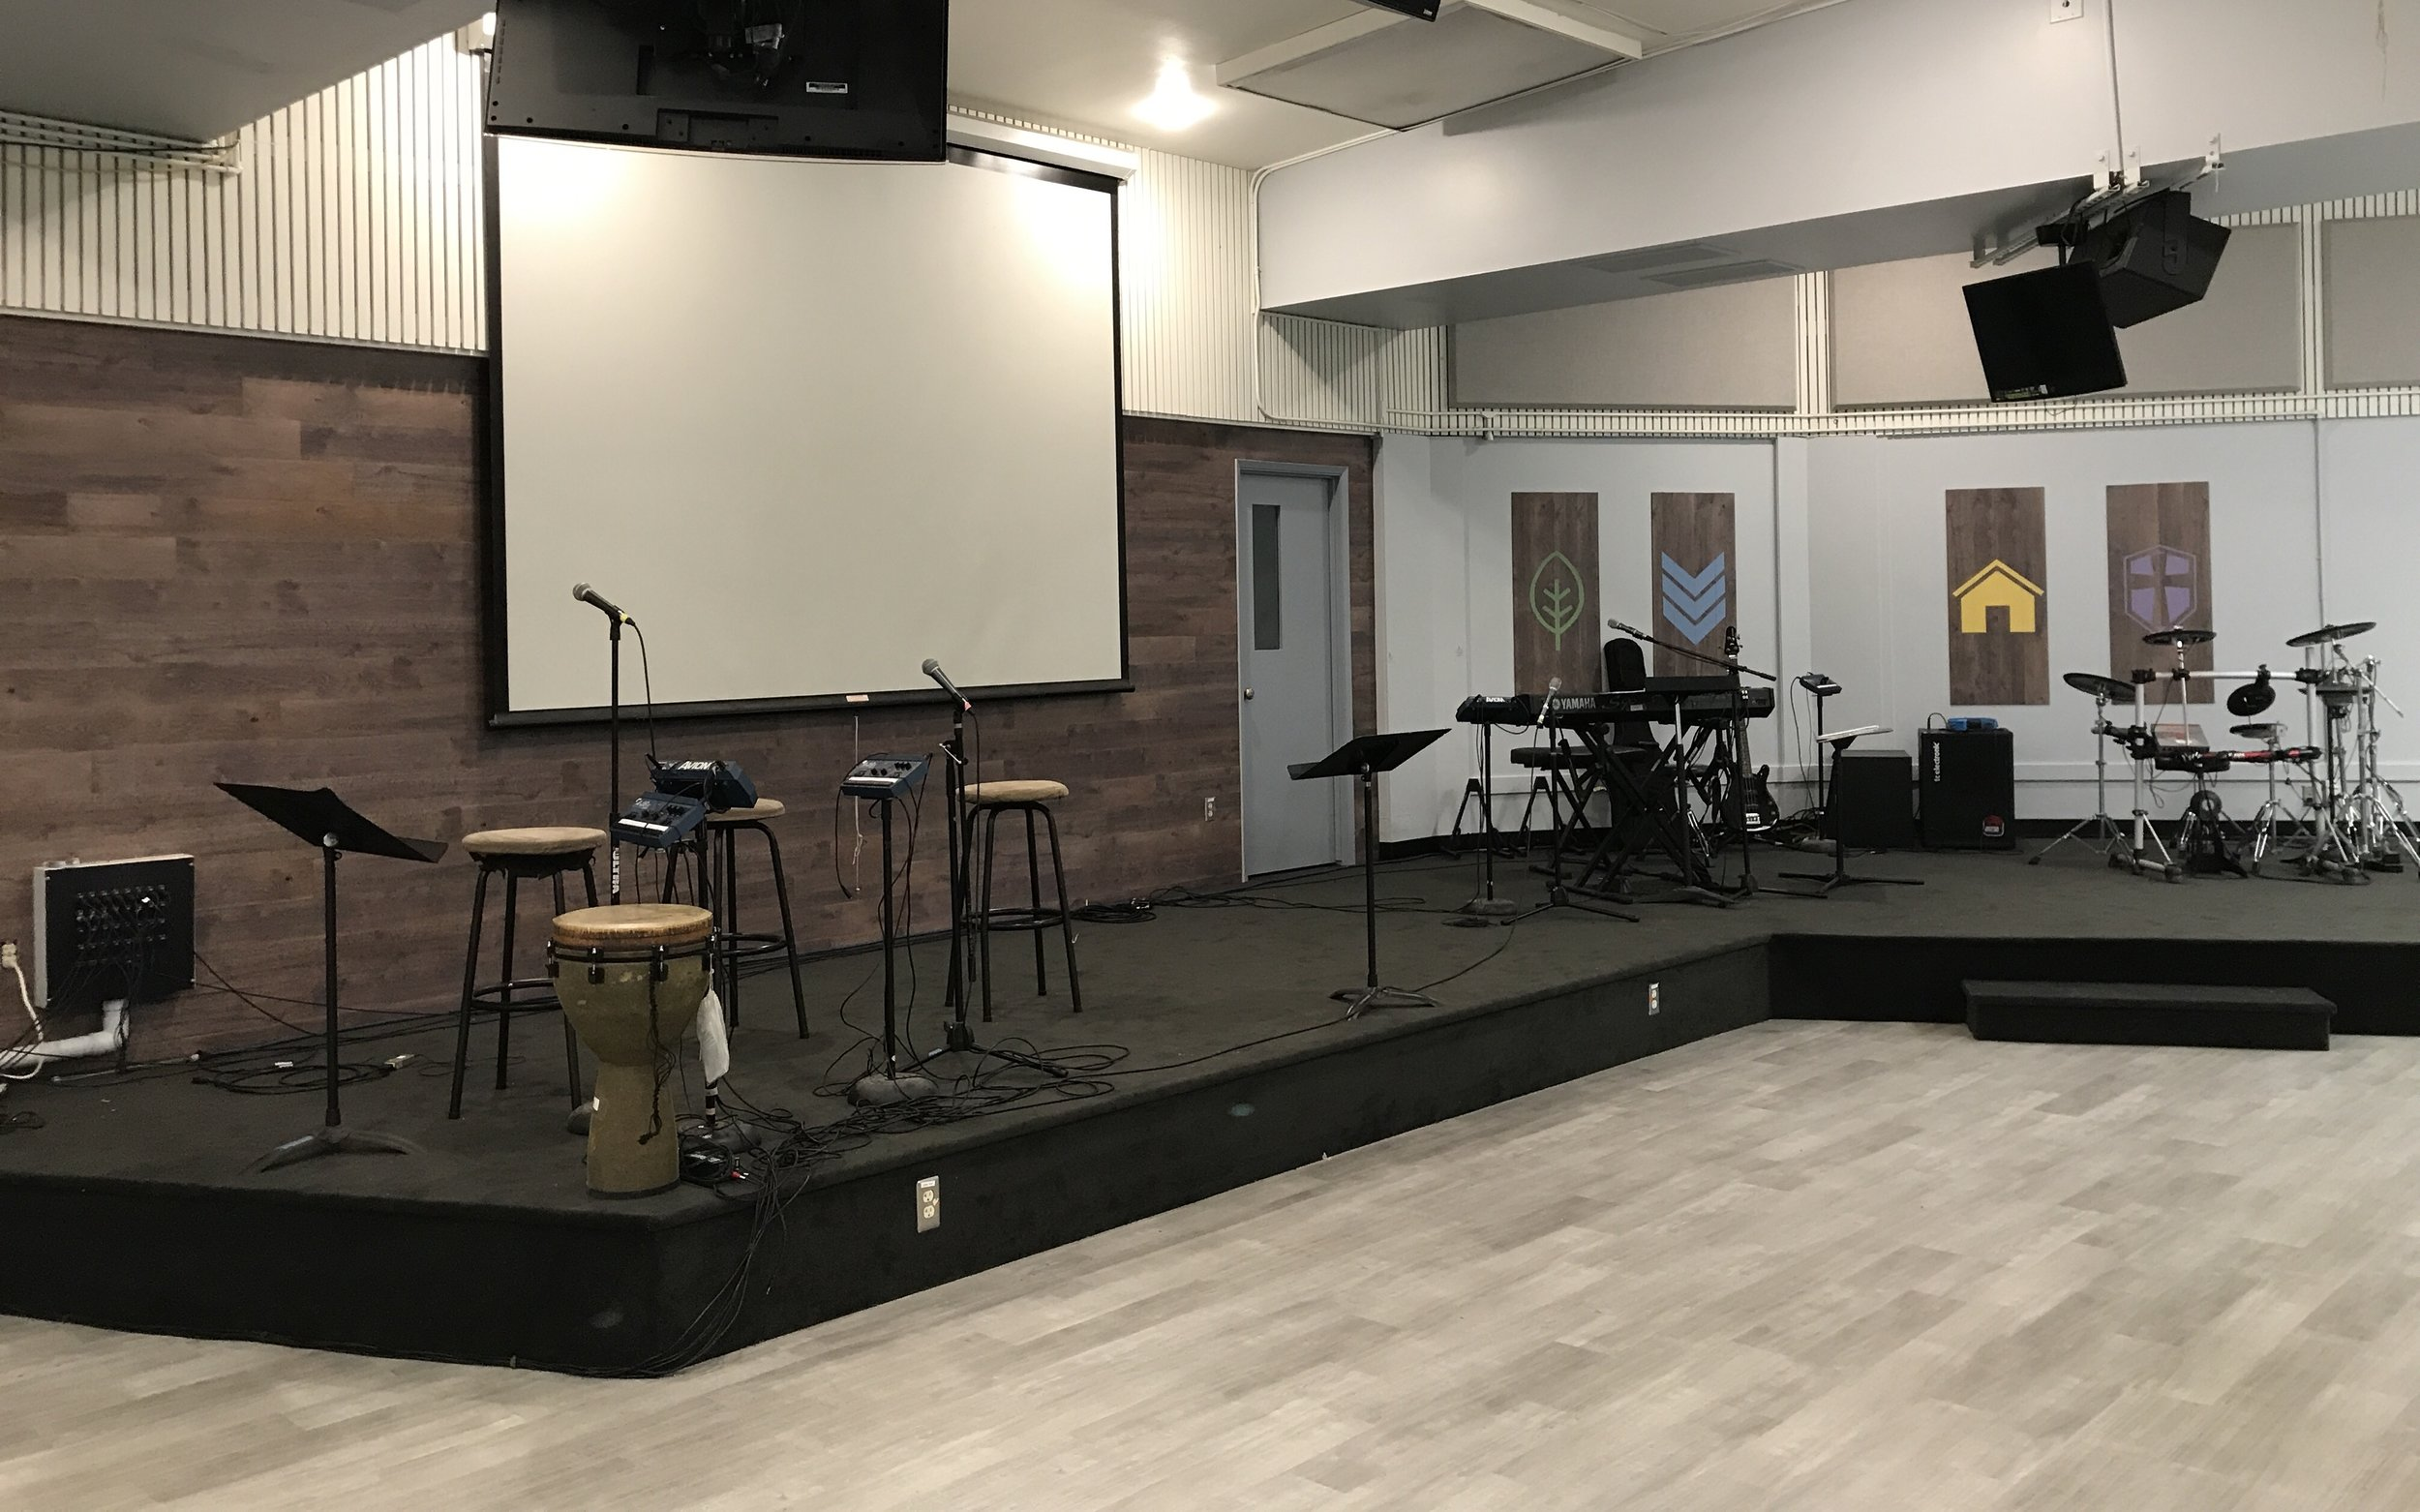 Providing Forerunner Christian Church a modern design - Forerunner, a Chinese Christian Church contacted us about remodeling their multi-purpose room with a goal of a more modern look. This area is used for many different events such as meals, youth group services, vacation bible school, etc. It also serves as their welcome center.We supplied and installed Karndean vinyl plank flooring, wood Wallplanks and charcoal walk off tiles in multiple areas throughout their multi purpose room and classrooms.Location: Fremont, CA